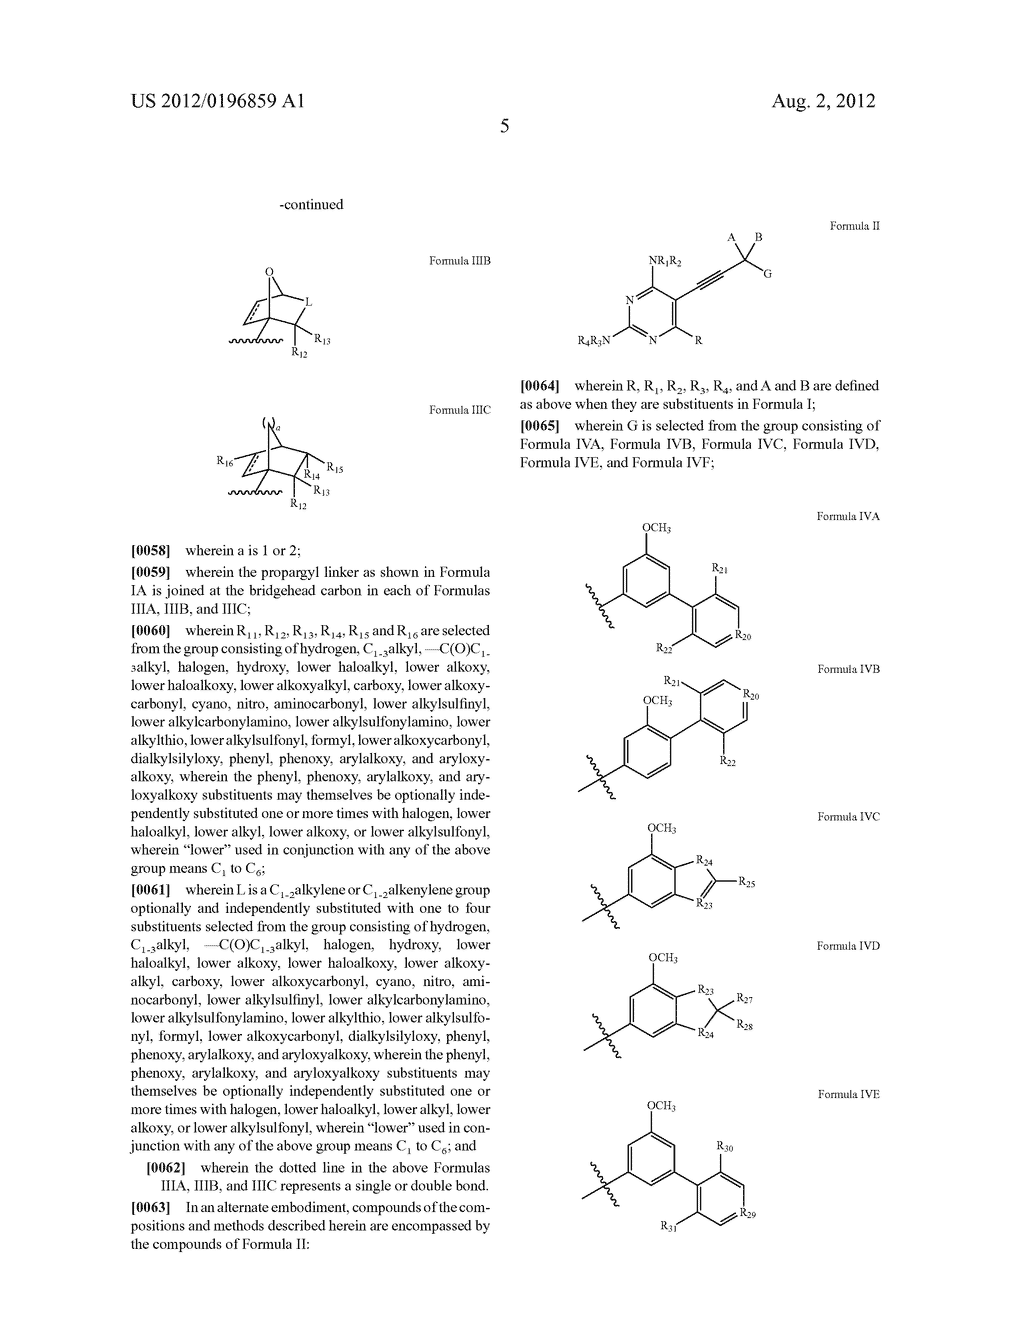 HETEROCYCLIC ANALOGS OF PROPARGYL-LINKED INHIBITORS OF DIHYDROFOLATE     REDUCTASE - diagram, schematic, and image 21